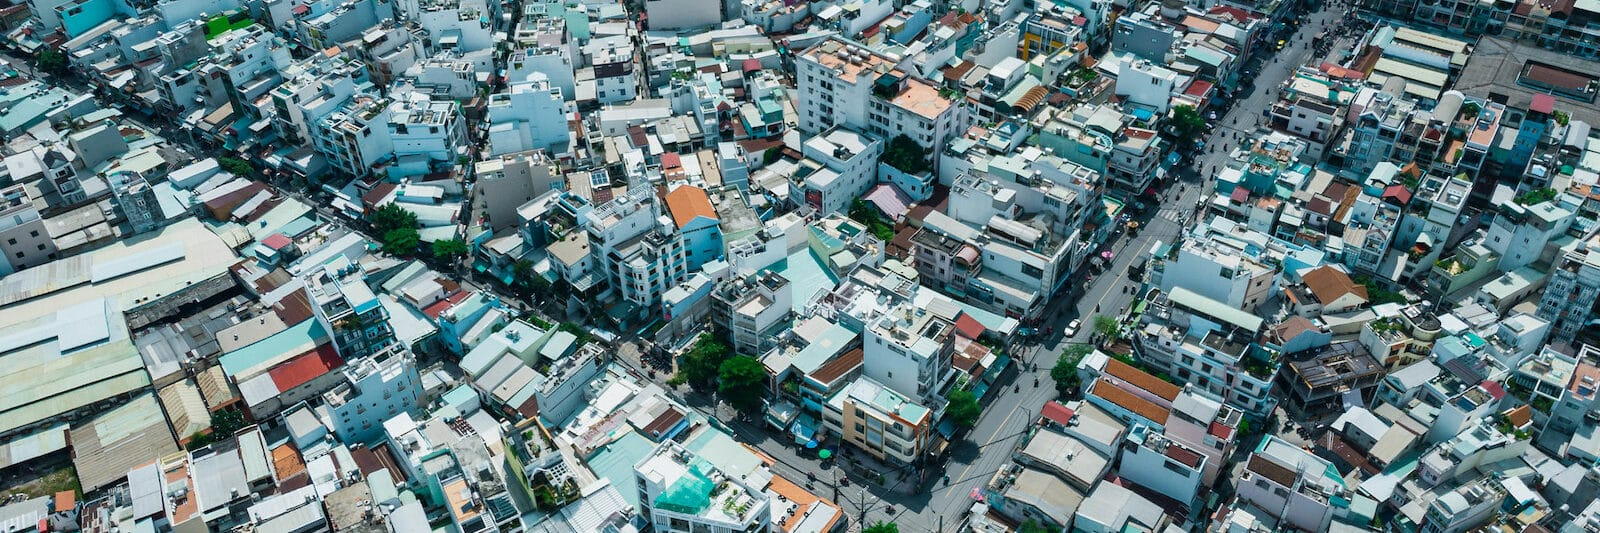 Image from a drone giving an aerial view of ho chi minh city's layout